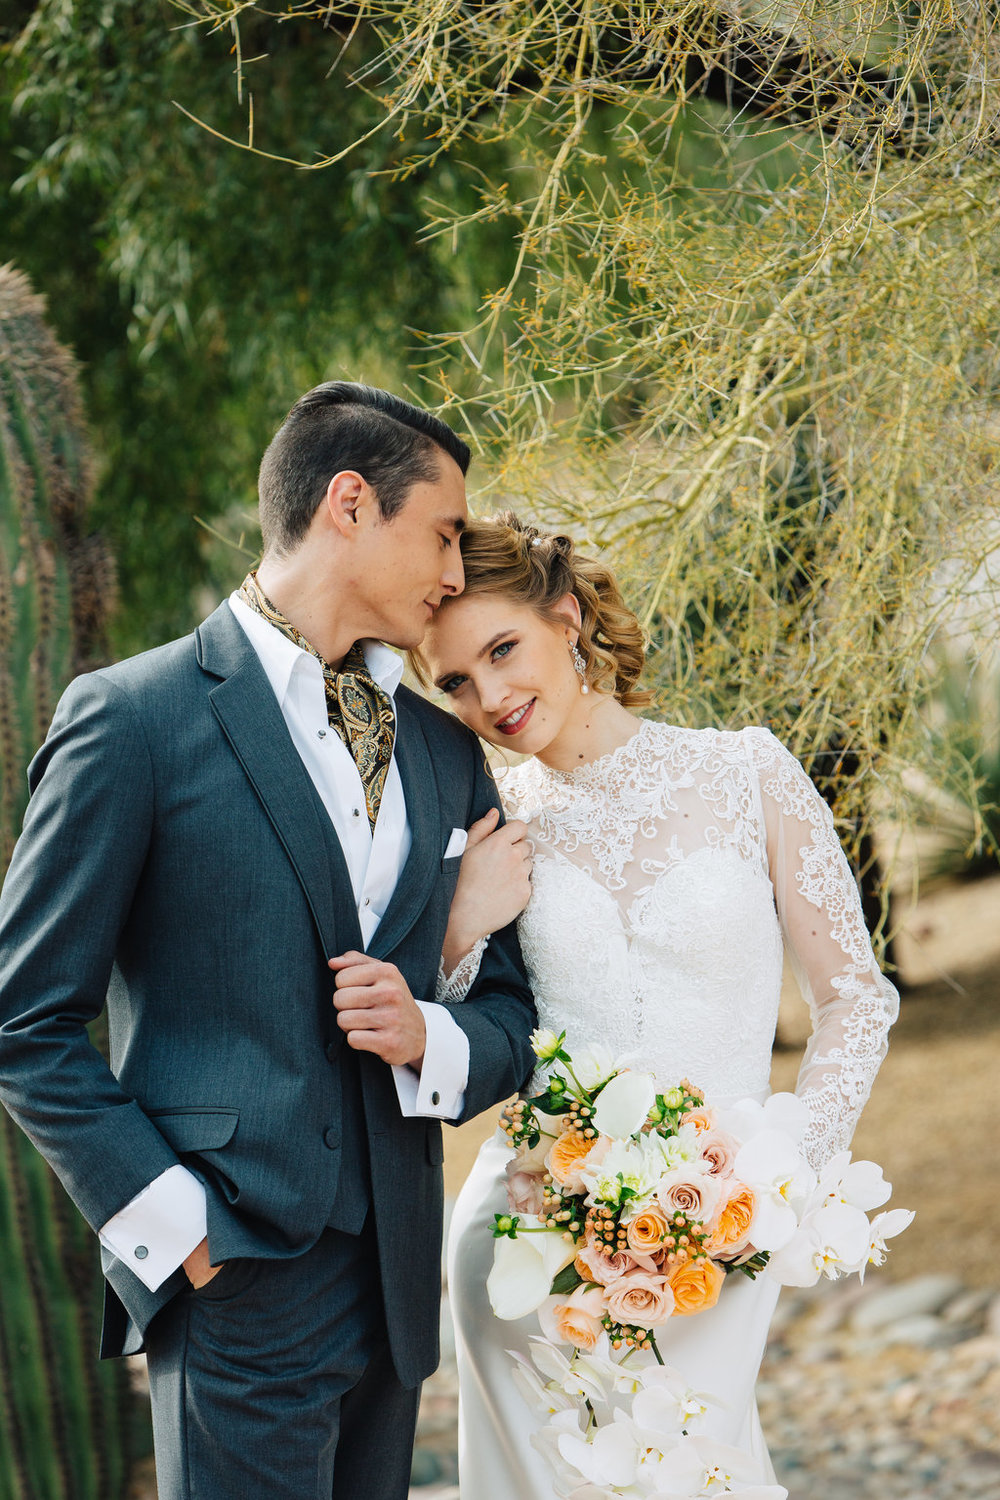 Bride, Groom, Phoenix Scottsdale Arizona Wedding Planner, Bridal gown, lace bridal gown, sleeved bridal gown, Groom attire, grey suite, southwest, ascot, groomsmen attire, Orchids, blush, peach, southwest, elegant, flowers, roses, rustic, western, bridal bouquet